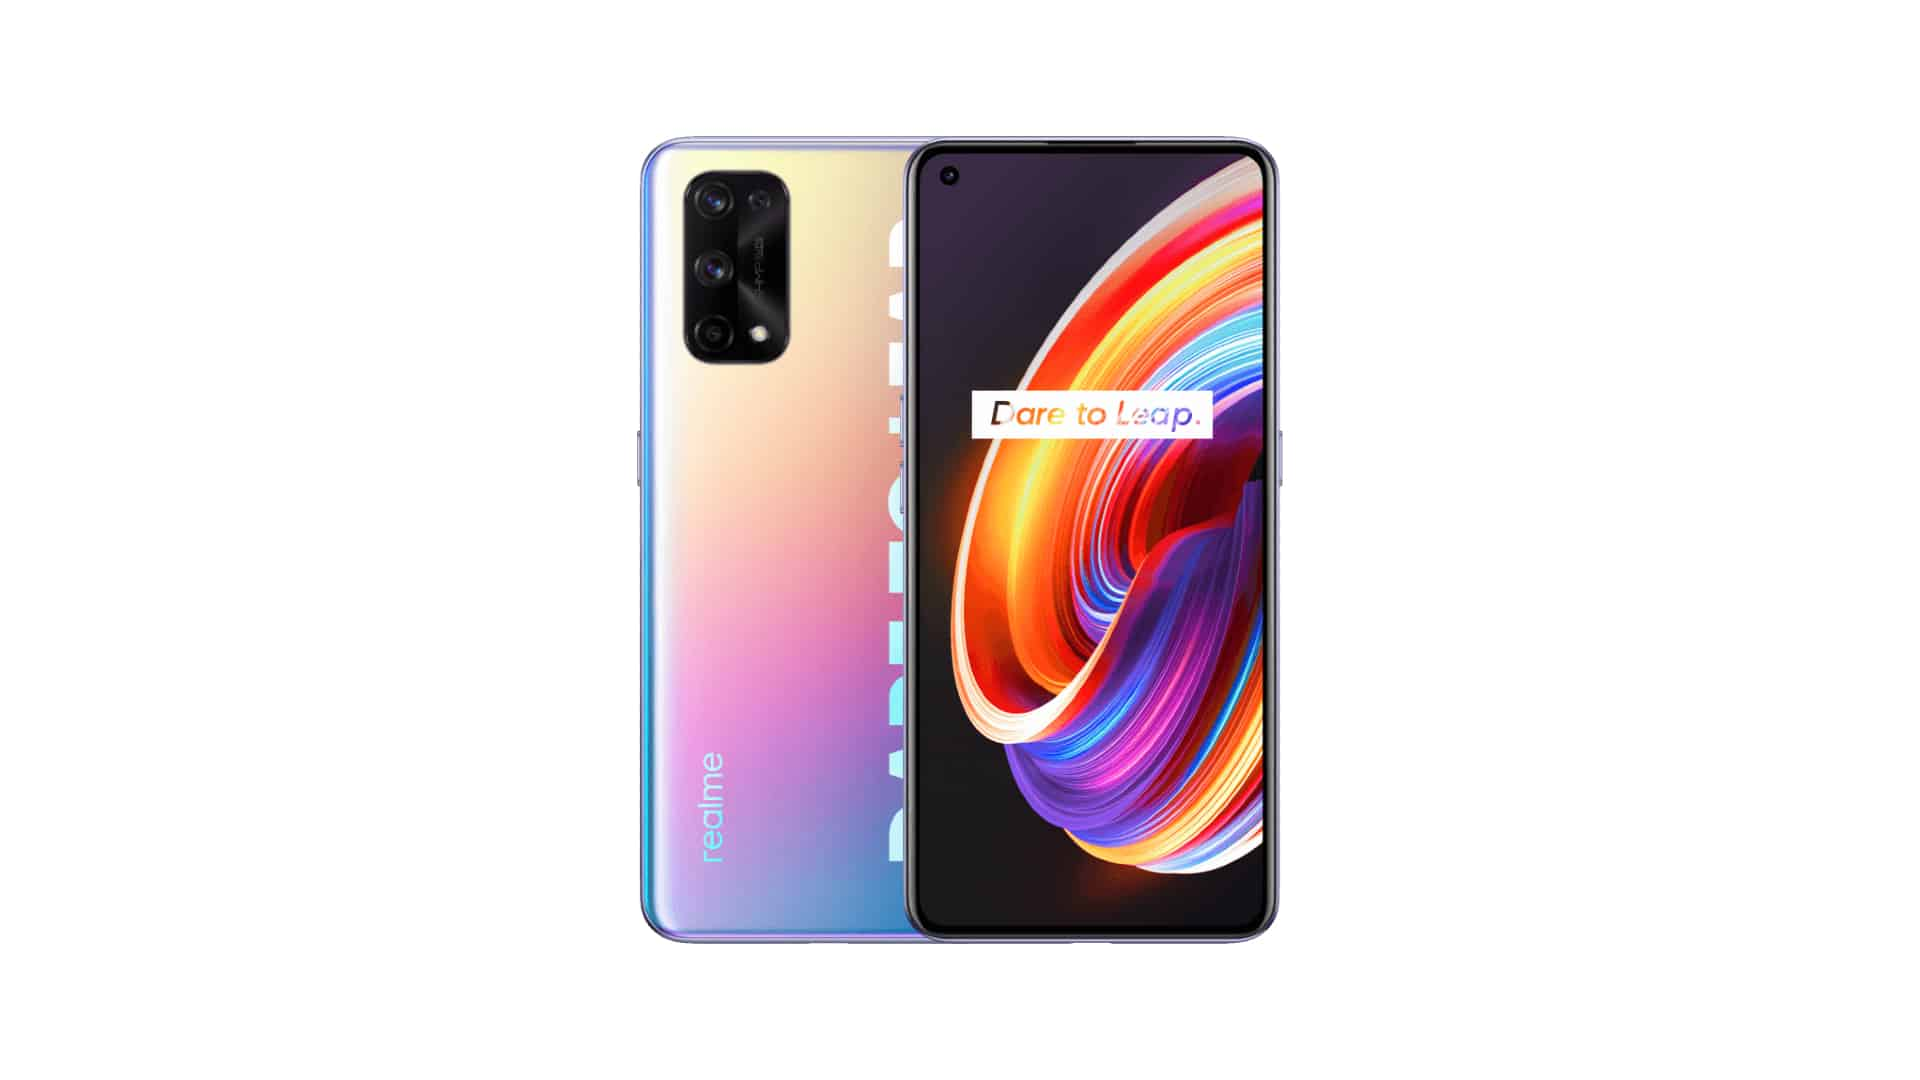 RMX2121_11.C.04 - Realme X7 Pro August 2021 security update